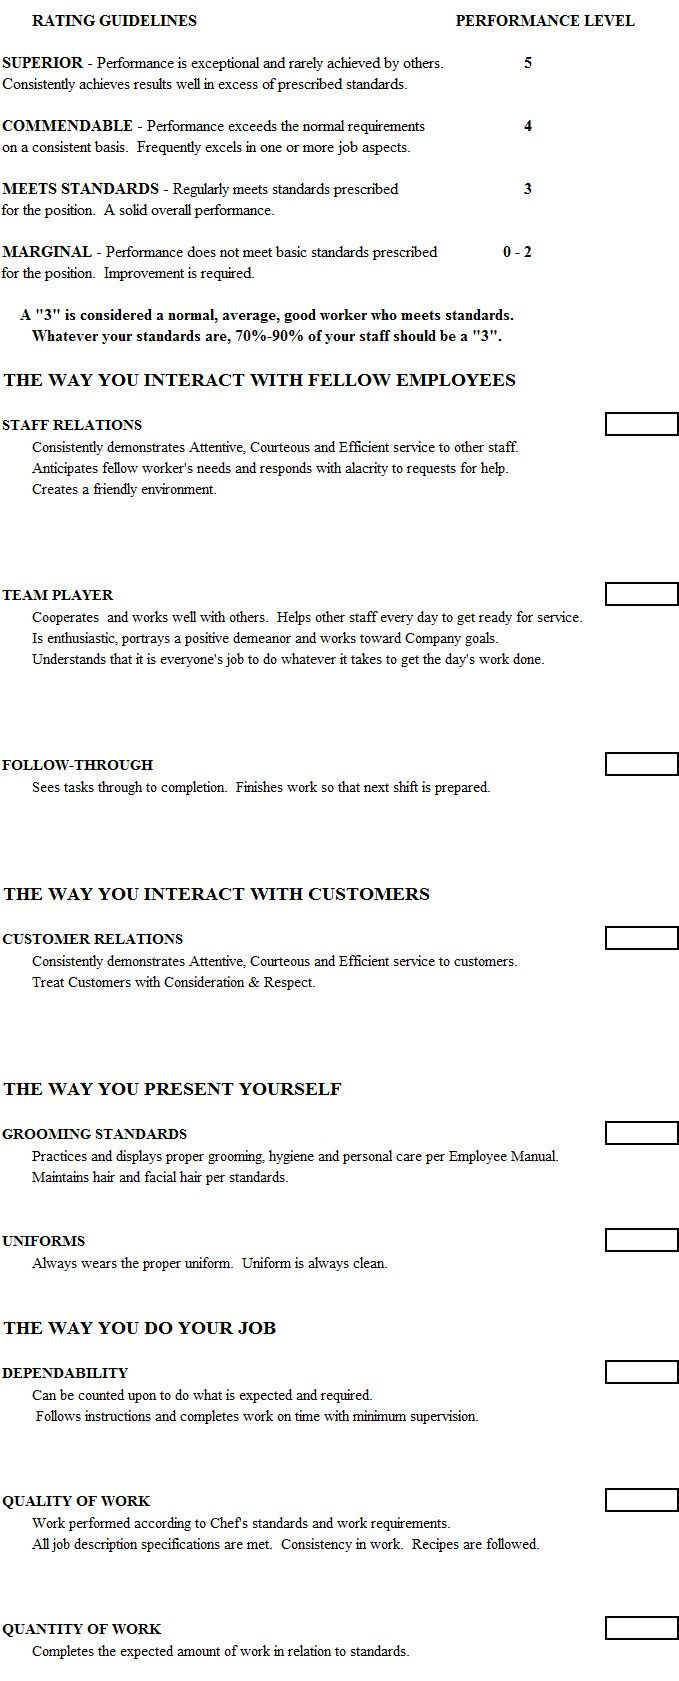 Employee Evaluation Template For Restaurants Artisteer Web Design ...